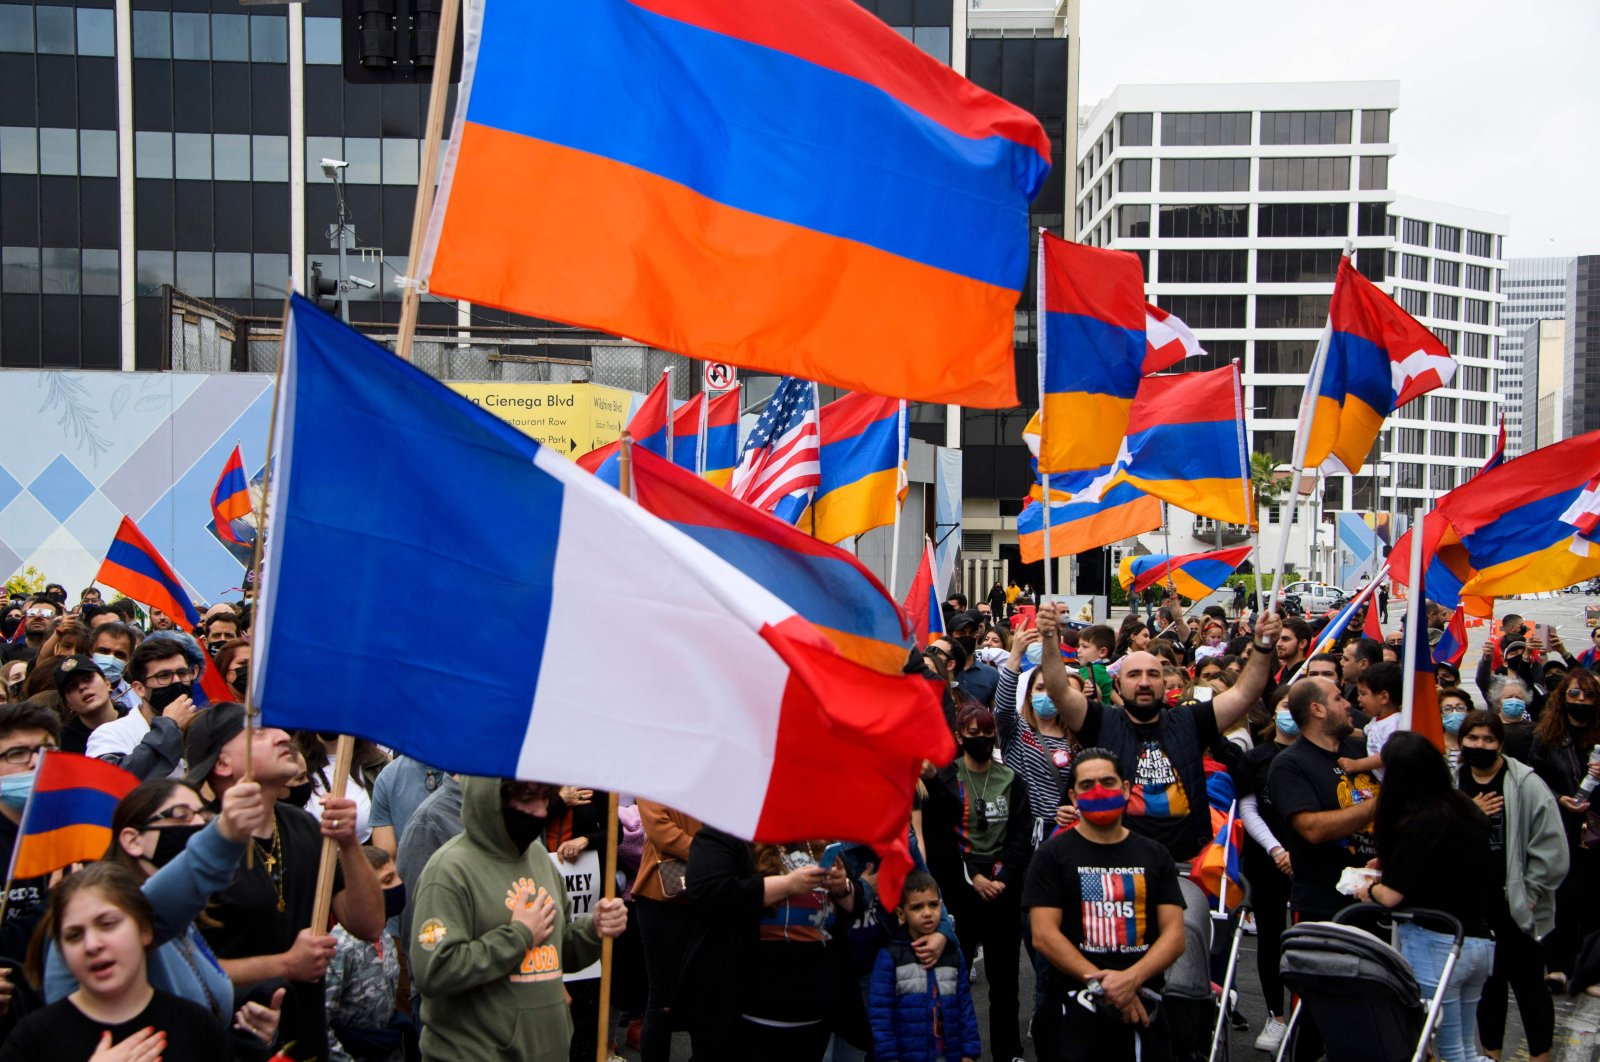 A French flag is waved alongside Armenian flags as people protest outside of the Turkish Consulate on the anniversary of the 1915 events, in Los Angeles, U.S., April 24, 2021. (AFP Photo)